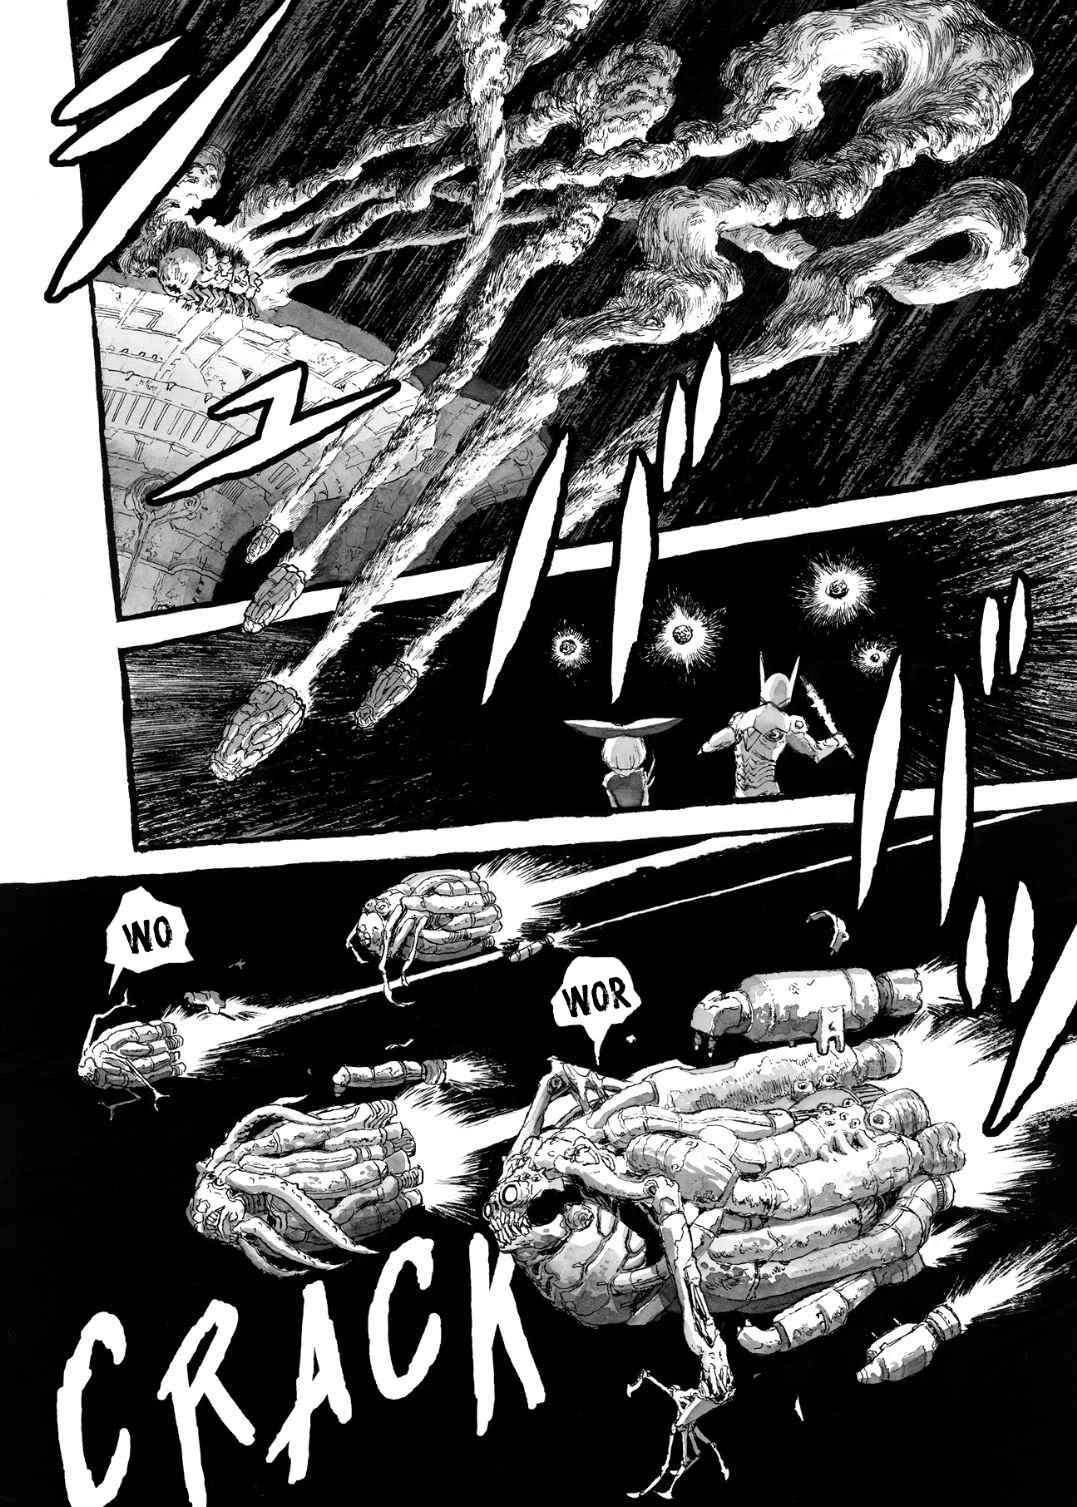 Bibliomania Chapter 3: The Bird Of Room 413 And The Hero Of Room 385 page 23 - Mangakakalots.com